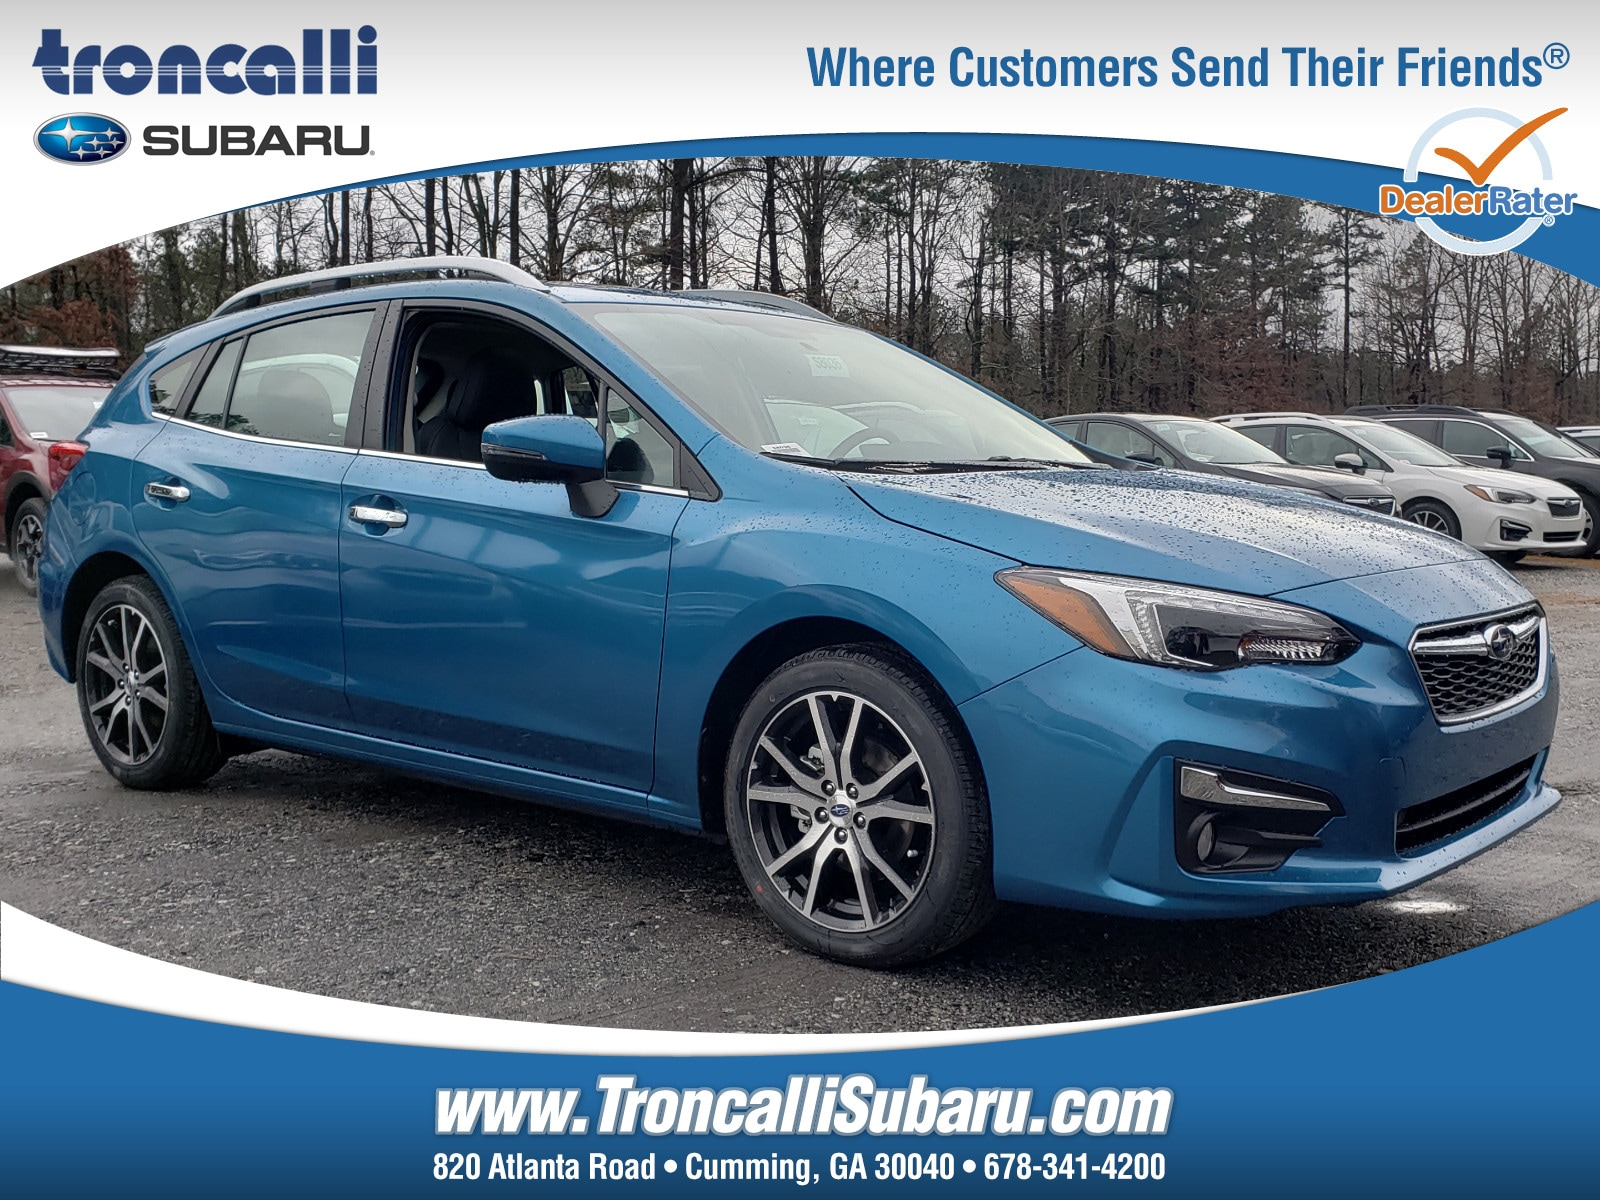 New 2019 Subaru Impreza 2.0i Limited 5-door in Cumming GA